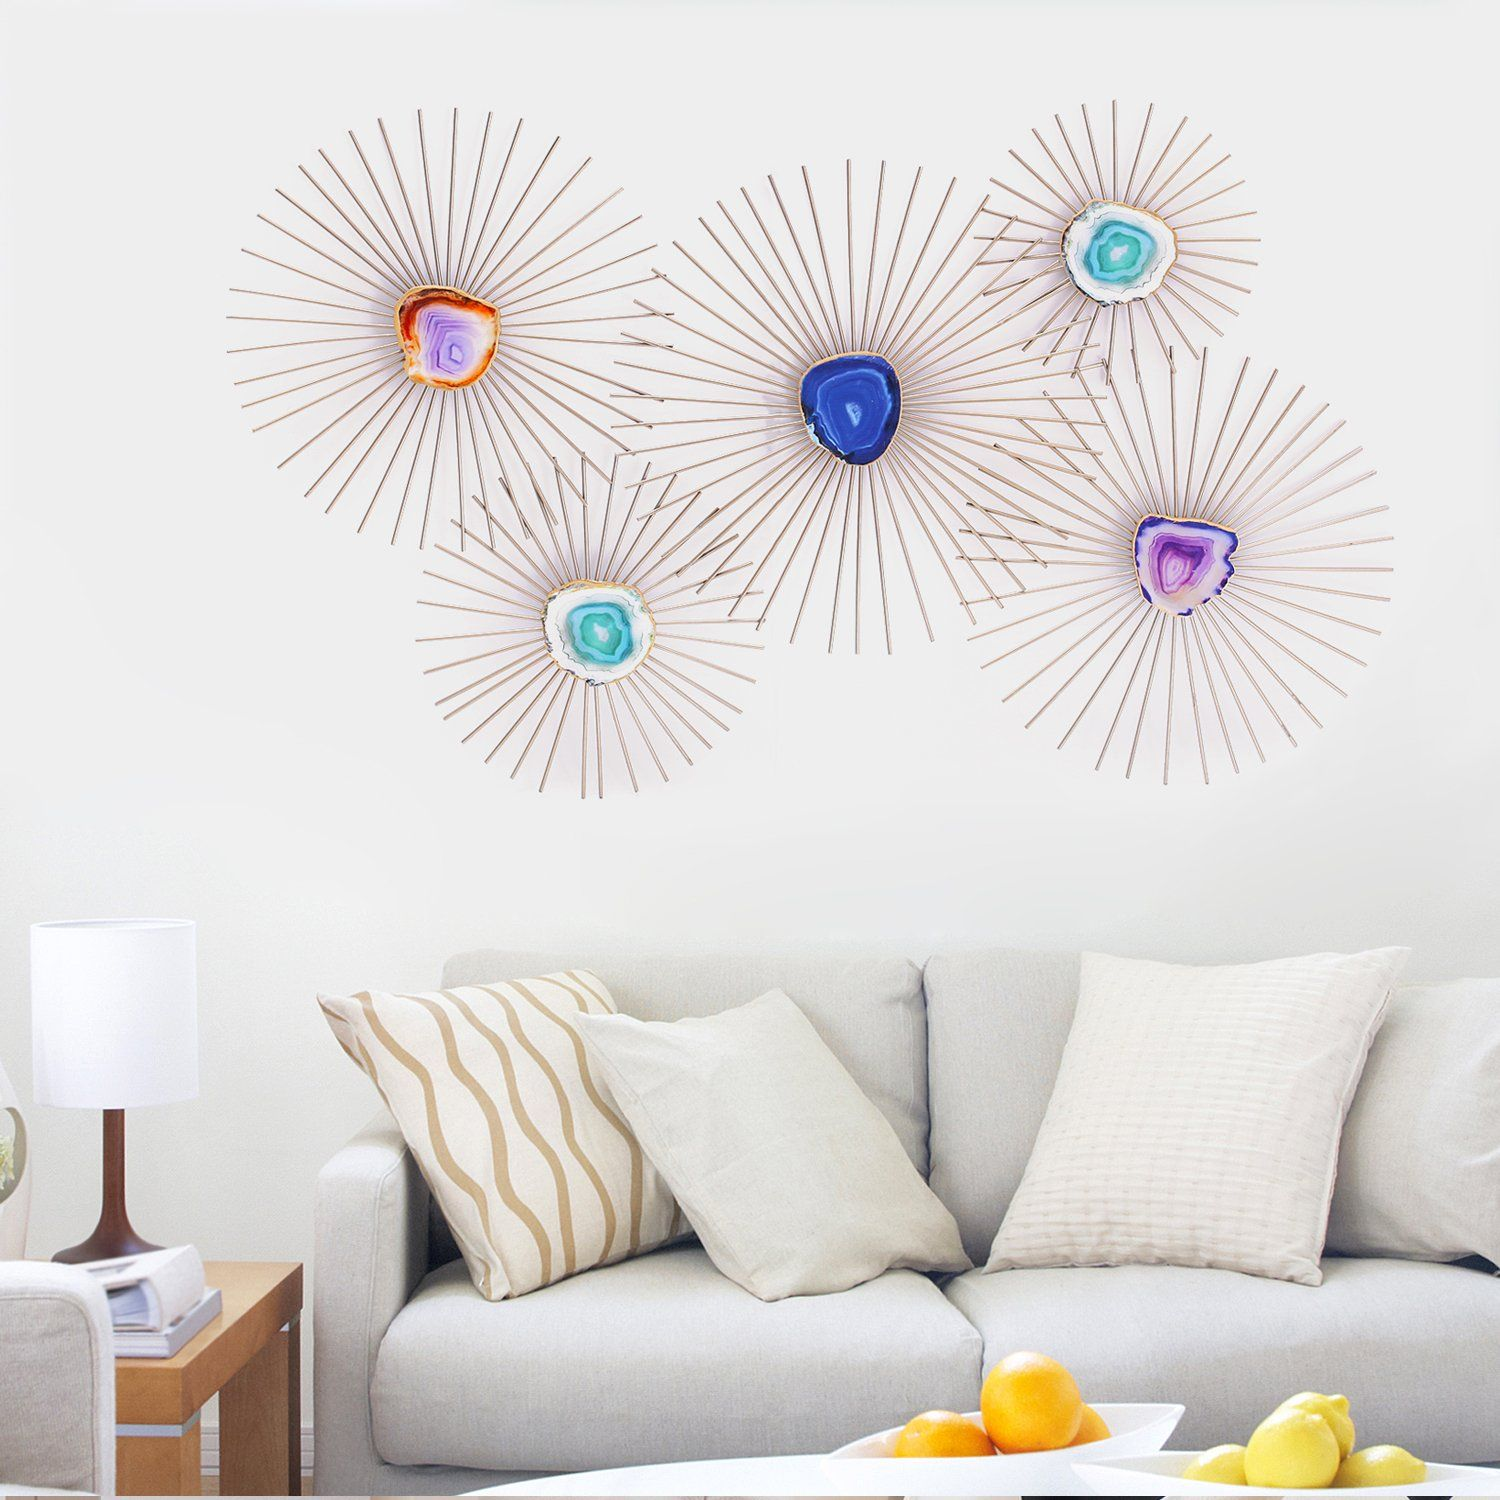 Asense Flower Starburst Metal Wall Art Sculptures Home Decor Life Decoration Wish To Know Extra Click On Th In 2020 Metal Sculpture Wall Art Metal Wall Art Wall Art